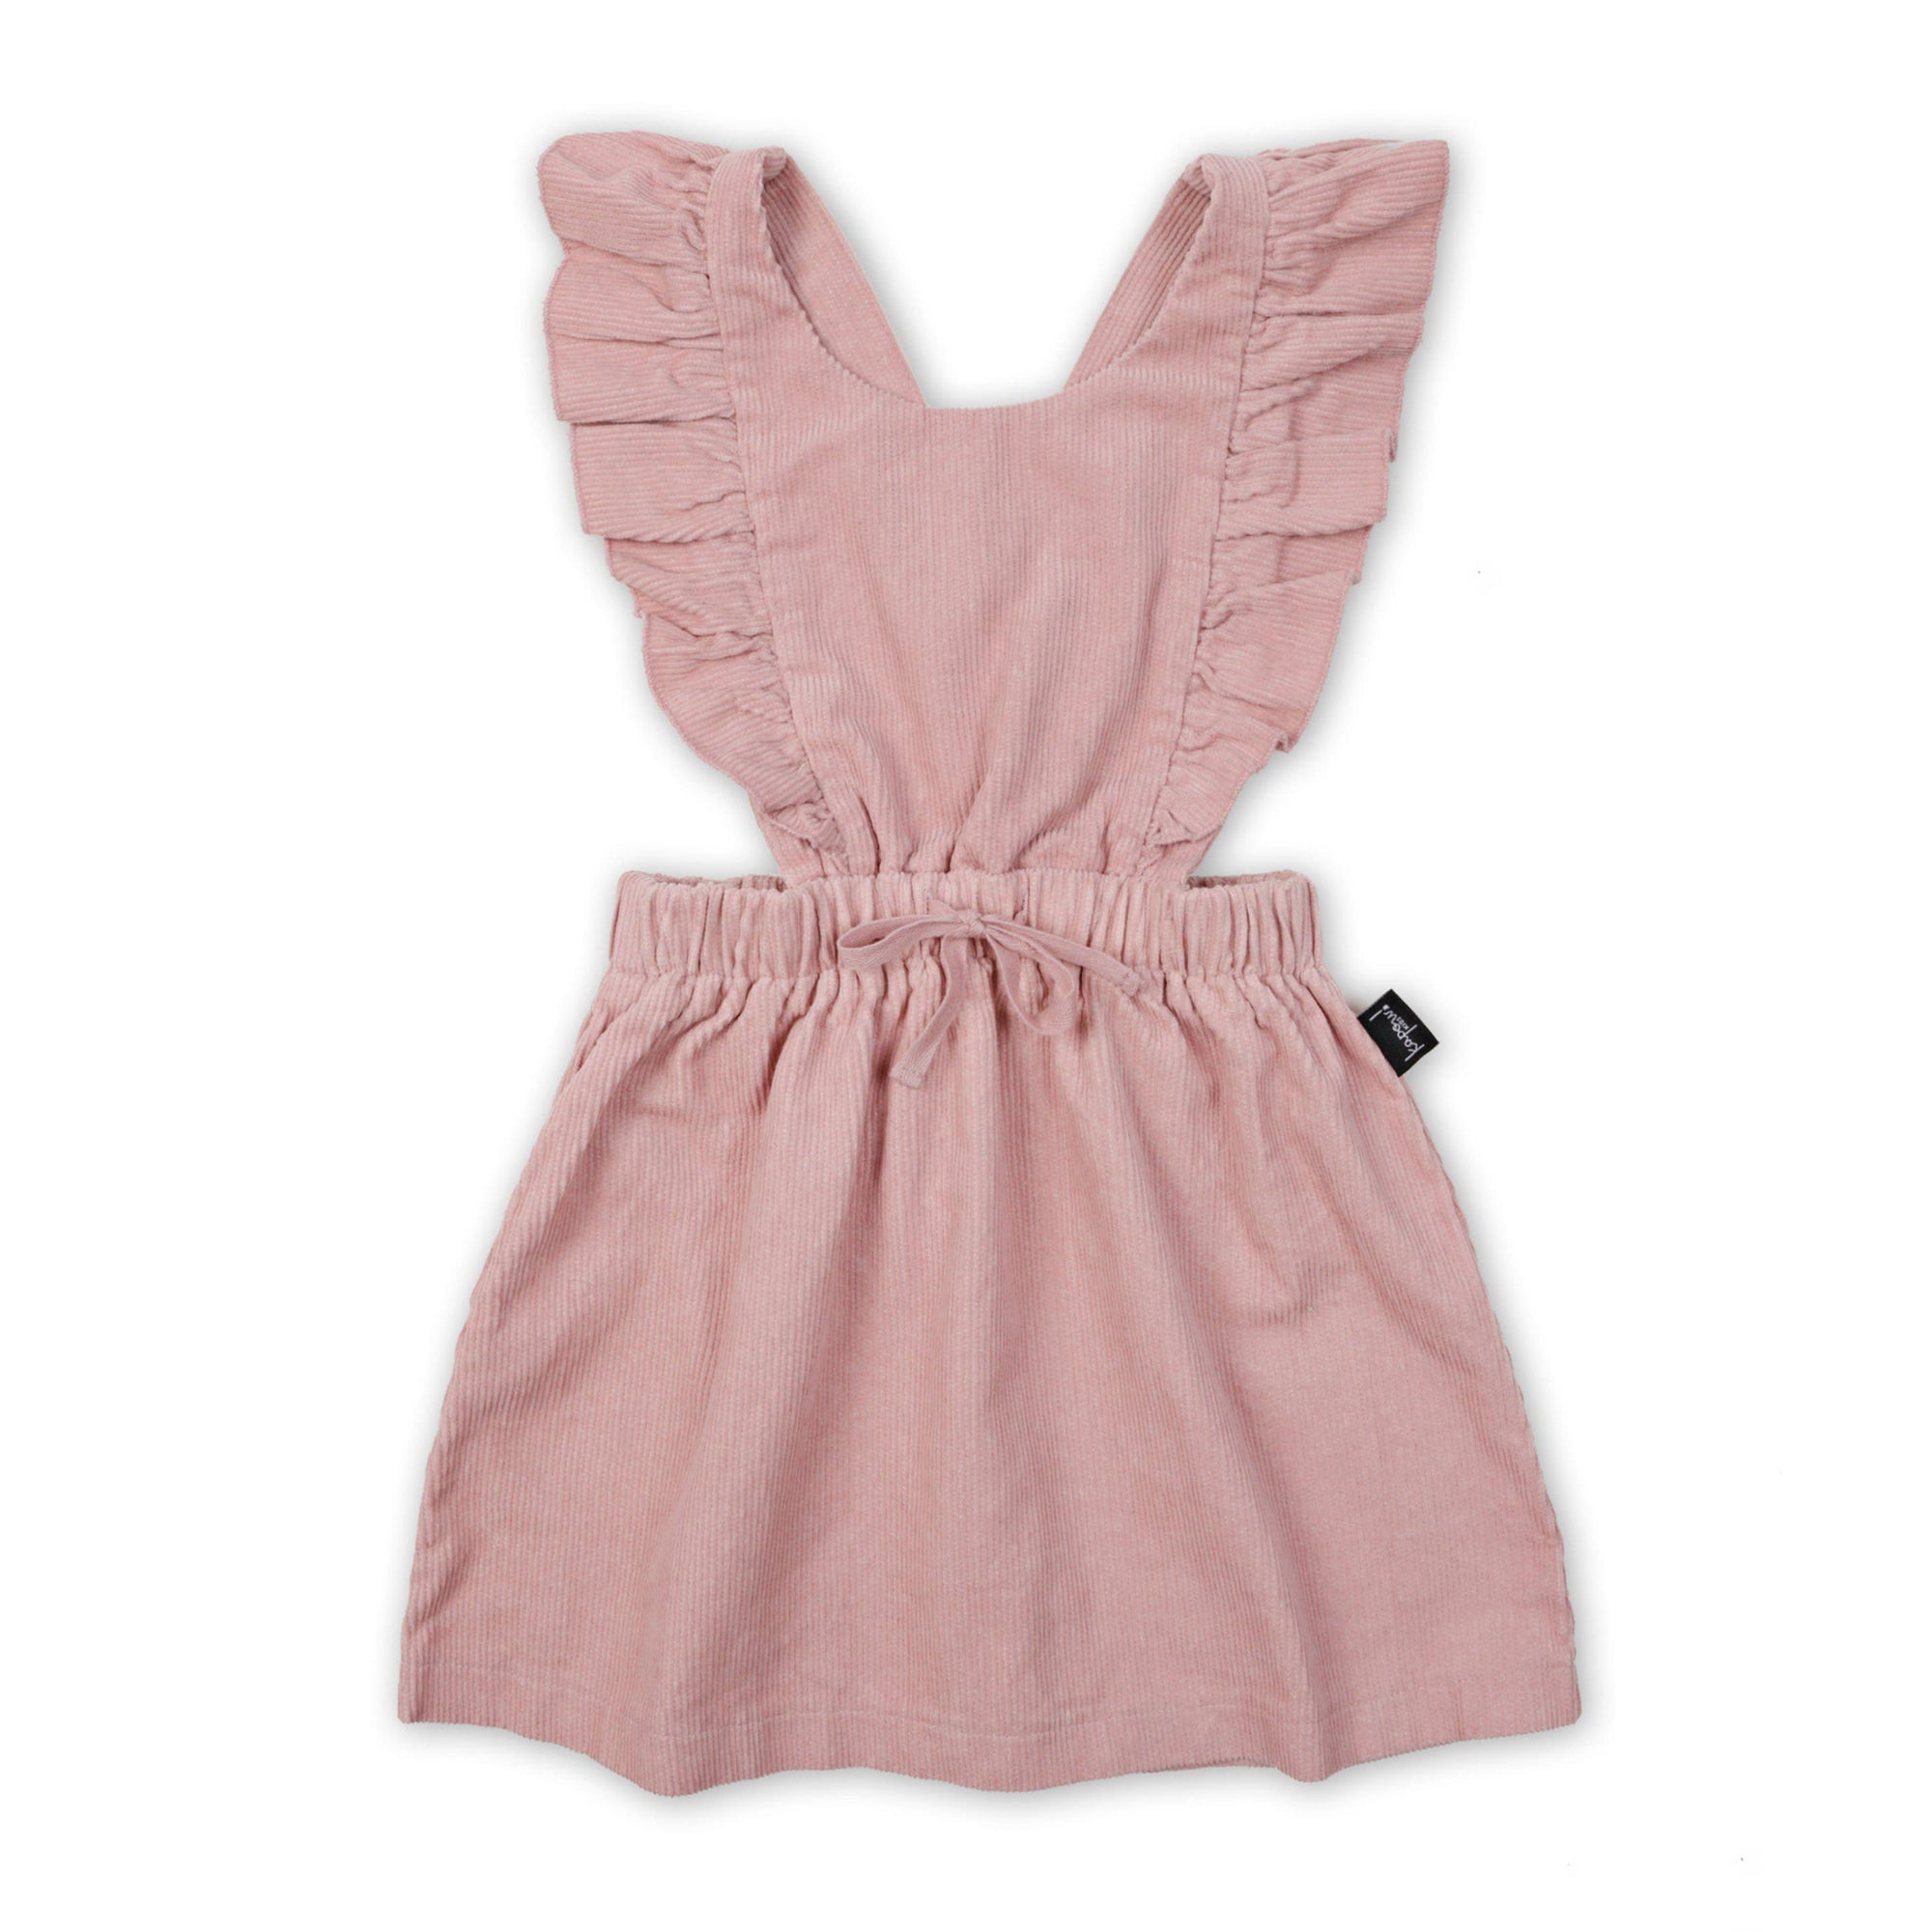 Kapow Kids Dusty Rose Ruffle Corduroy Pinafore Dress-BabyDonkie